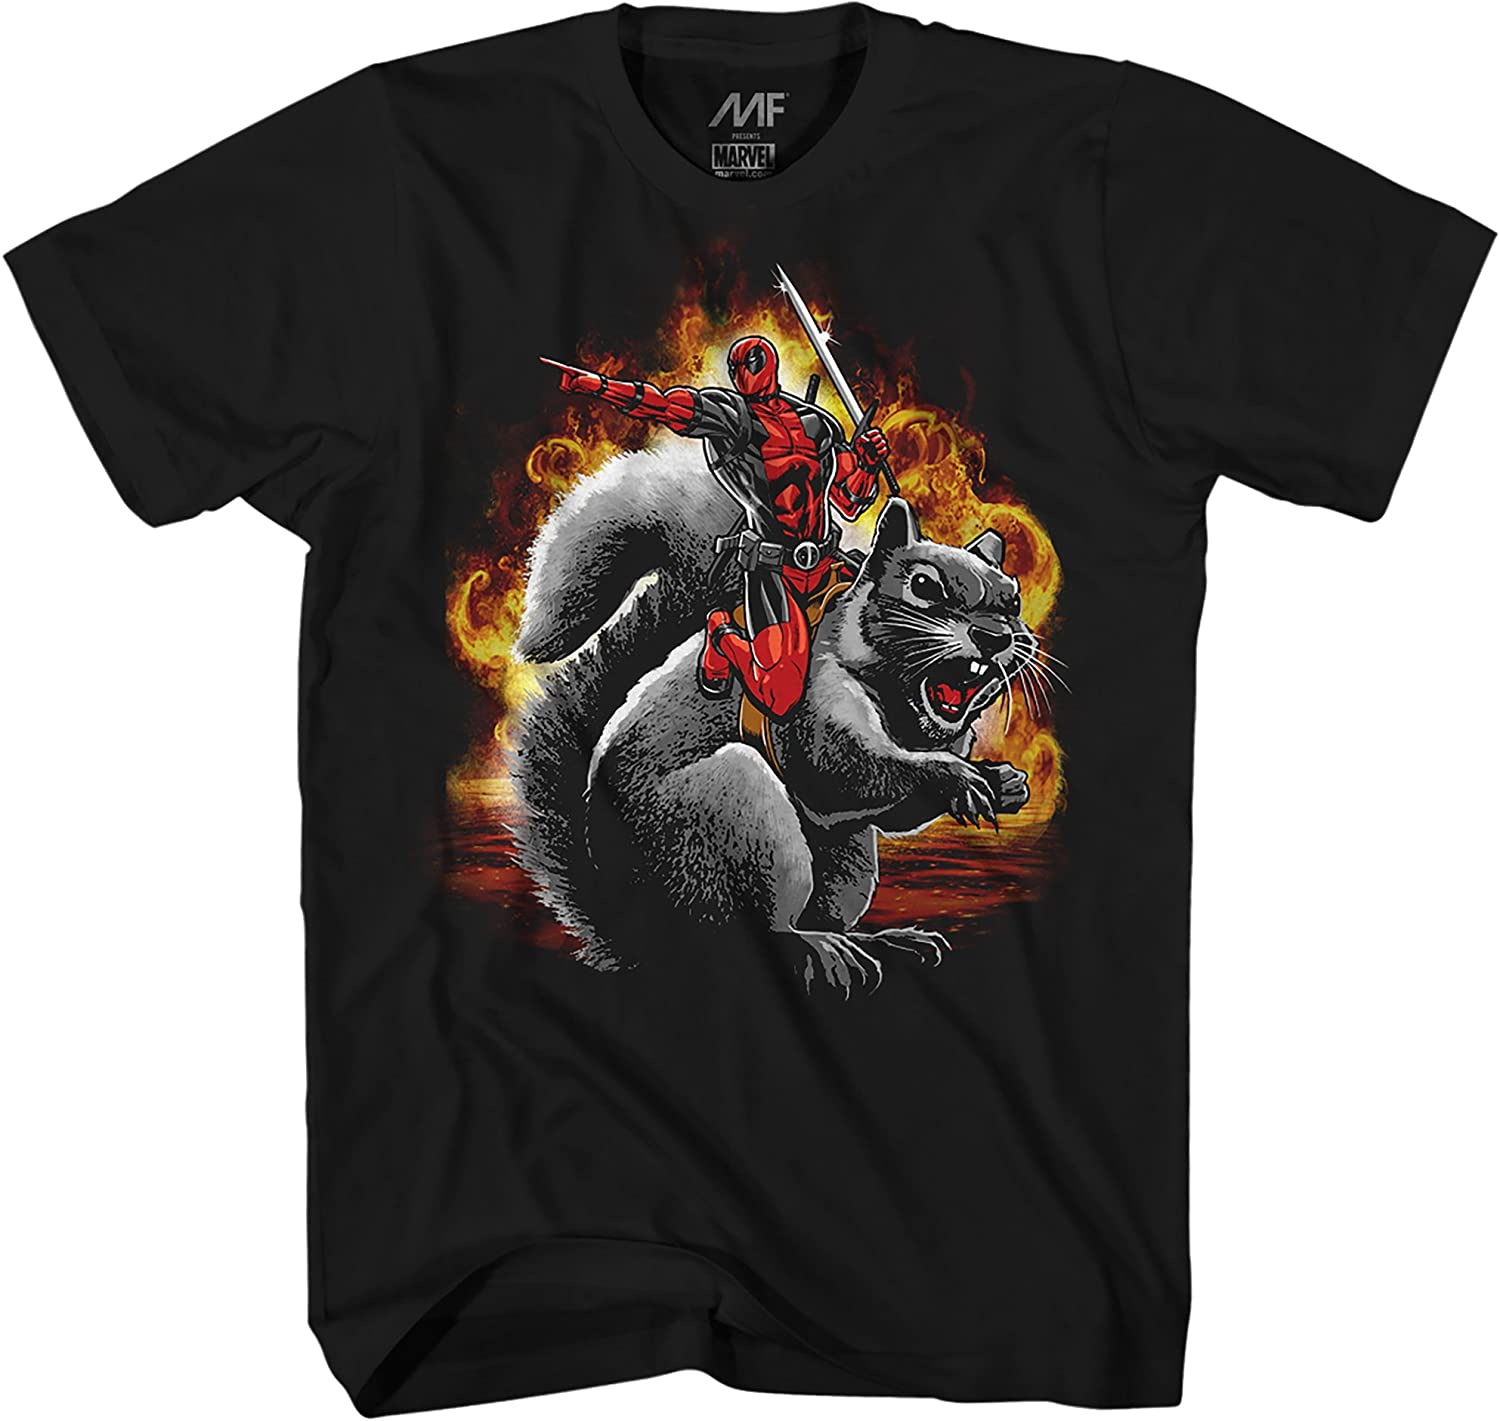 Deadpool Squirrel Wrangler Funny Adult gift M 2021new shipping free shipping Tee Graphic for T-Shirt